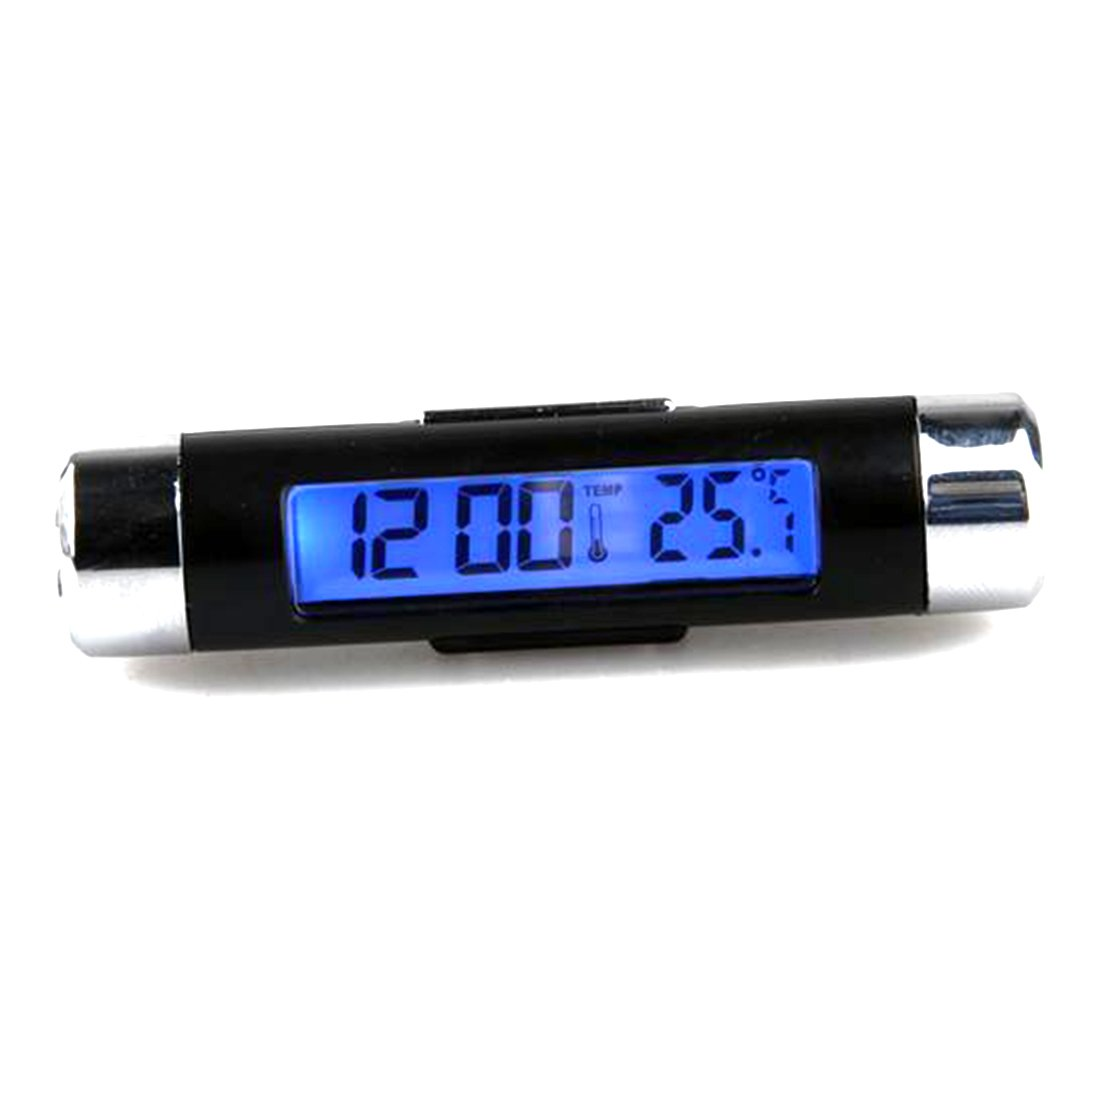 Amazoncom Car Lcd Display Digital Backlight Clock Time Thermometer